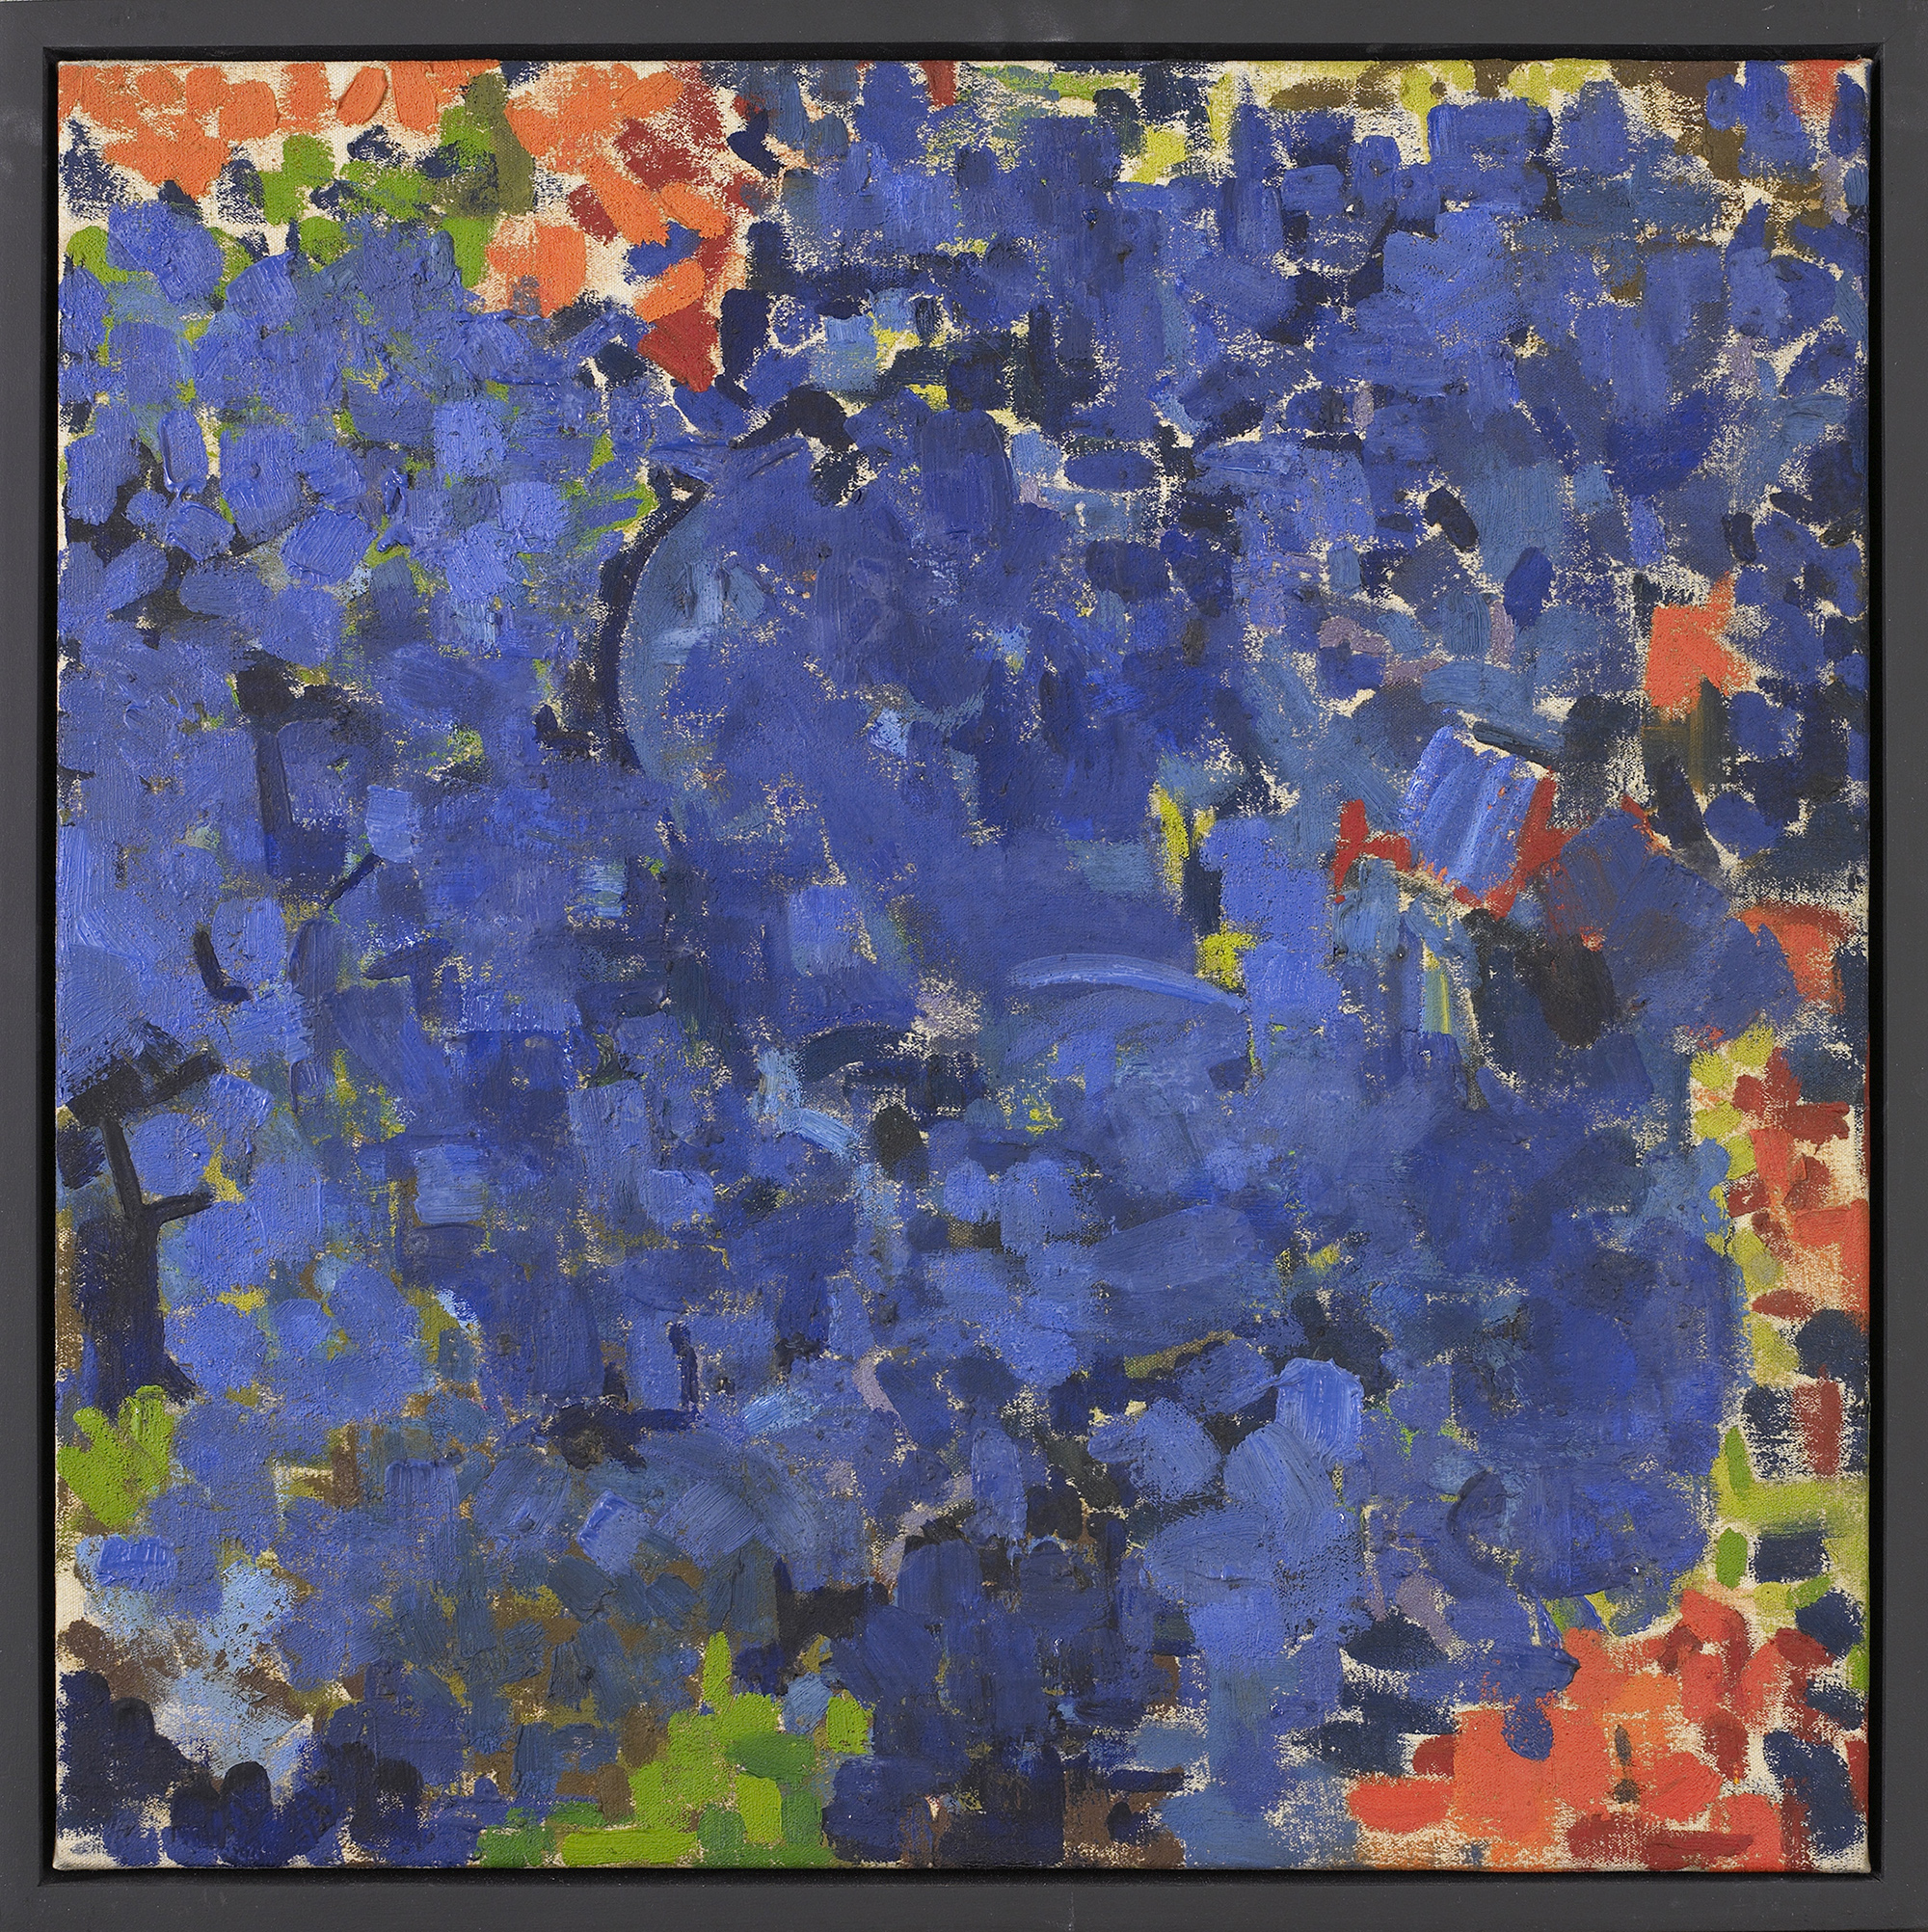 Blue 2 , 1960, Oil on canvas, 19 x 19 inches